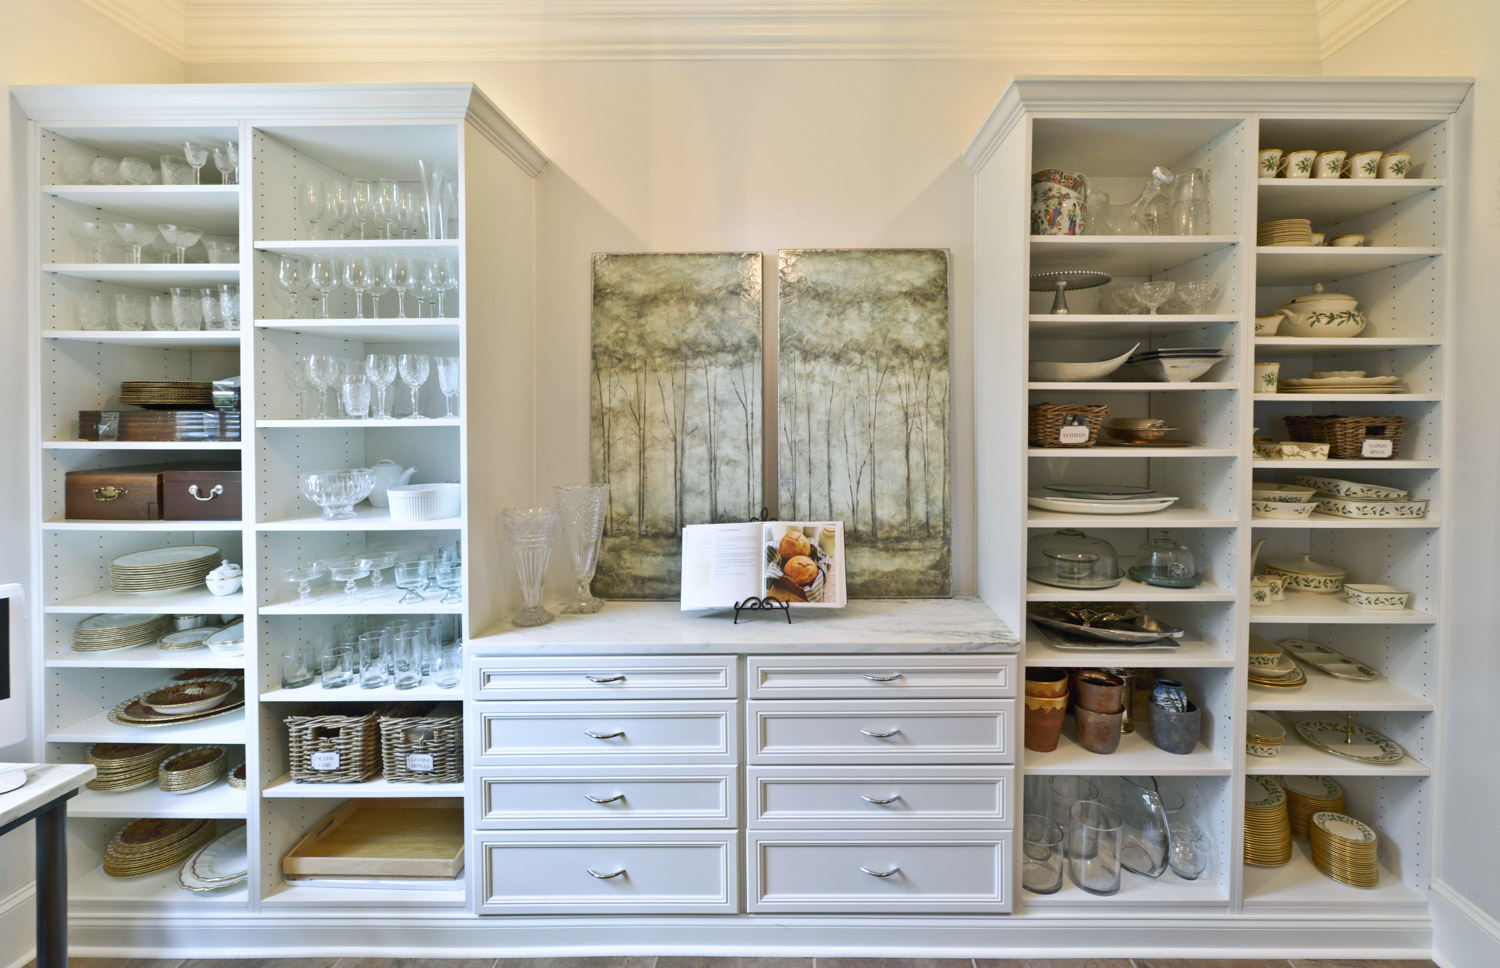 kitchen pantry shelving systems base cabinet depth organized living inspiration view full gallery 12 more